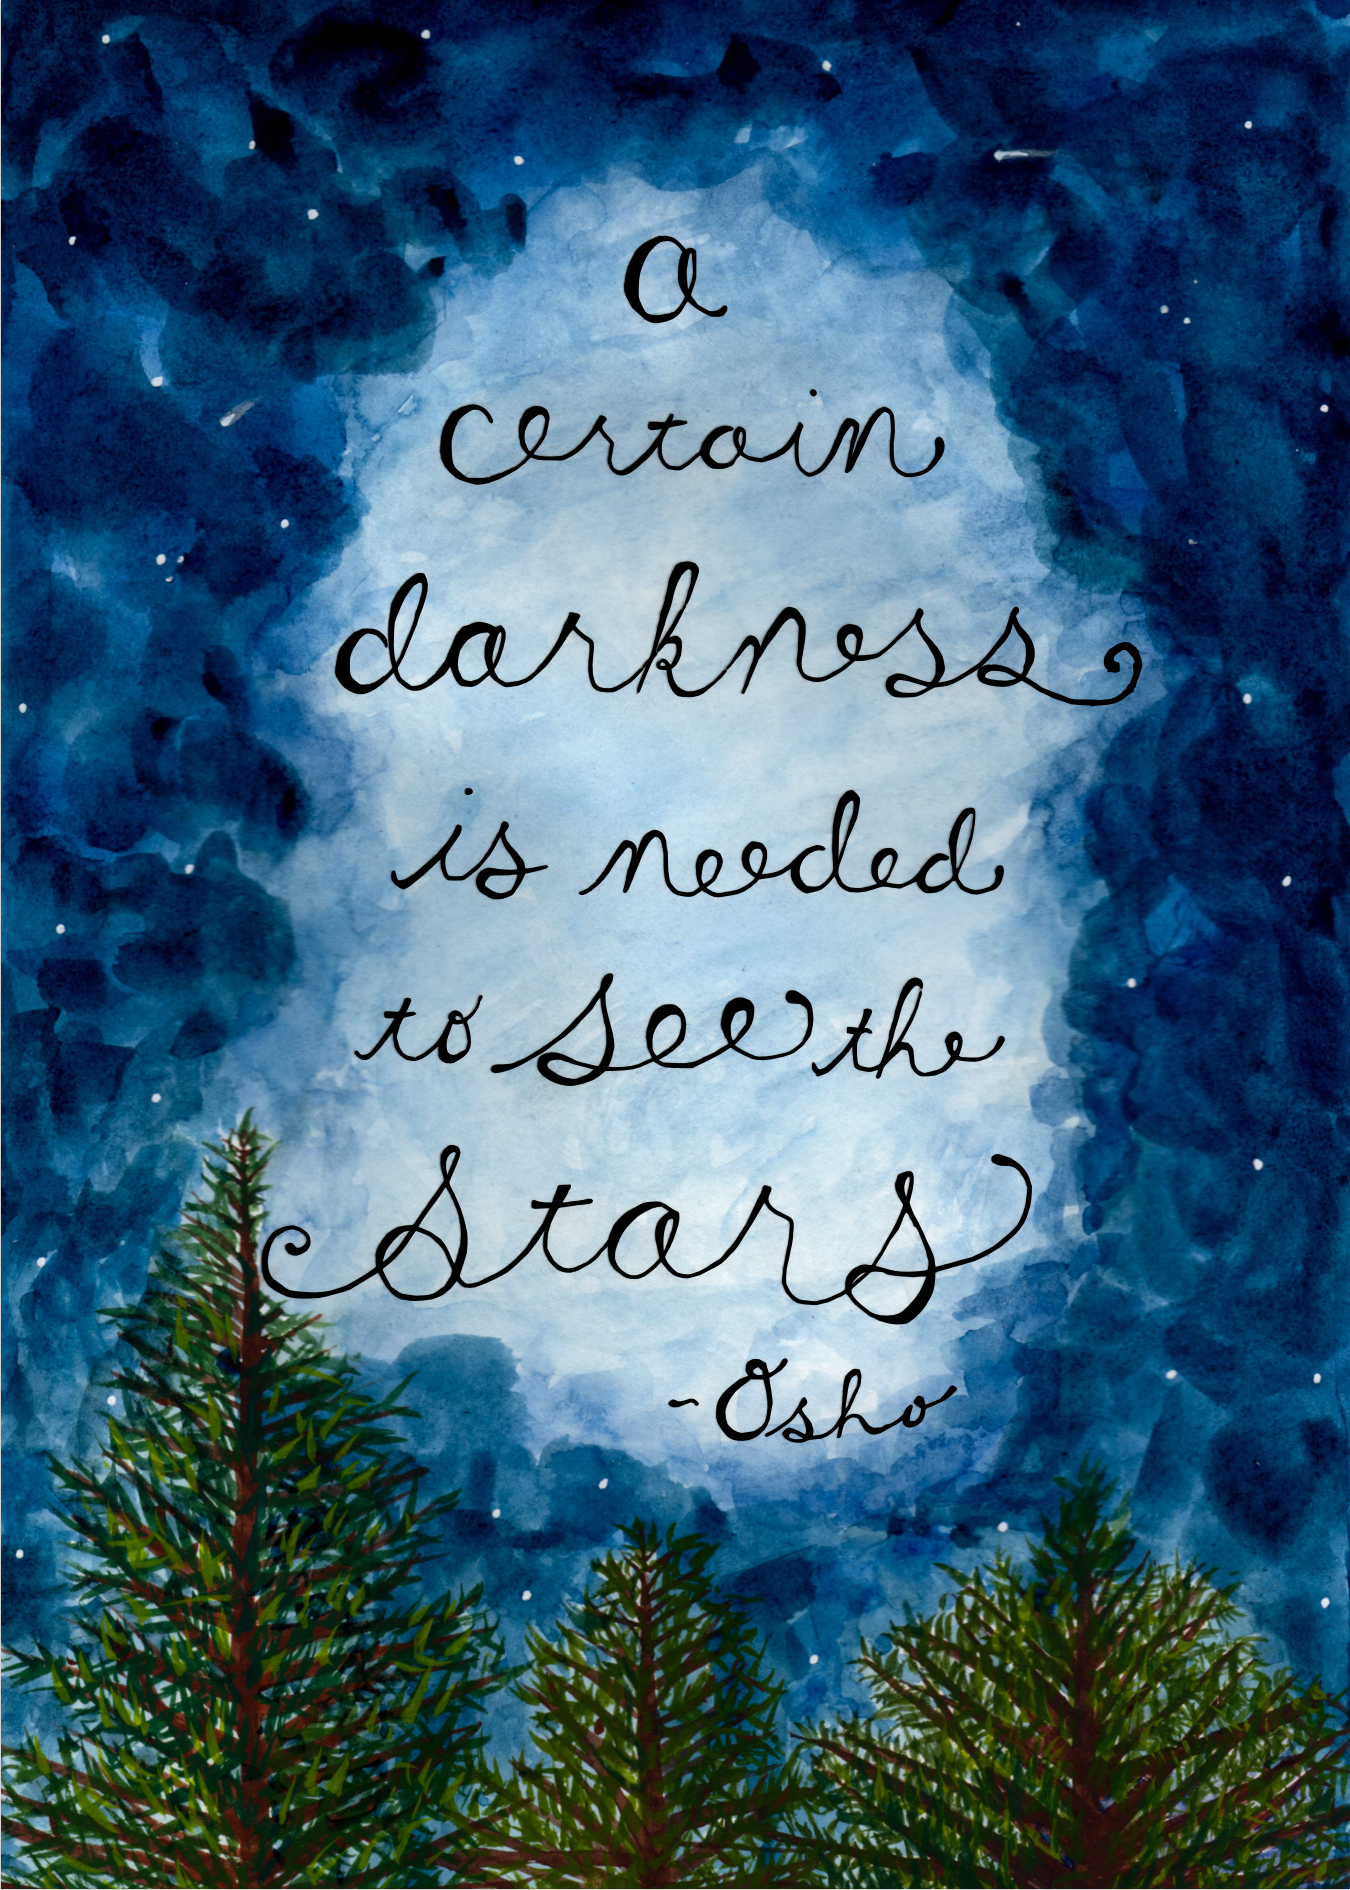 a certain darkness-12.16.png